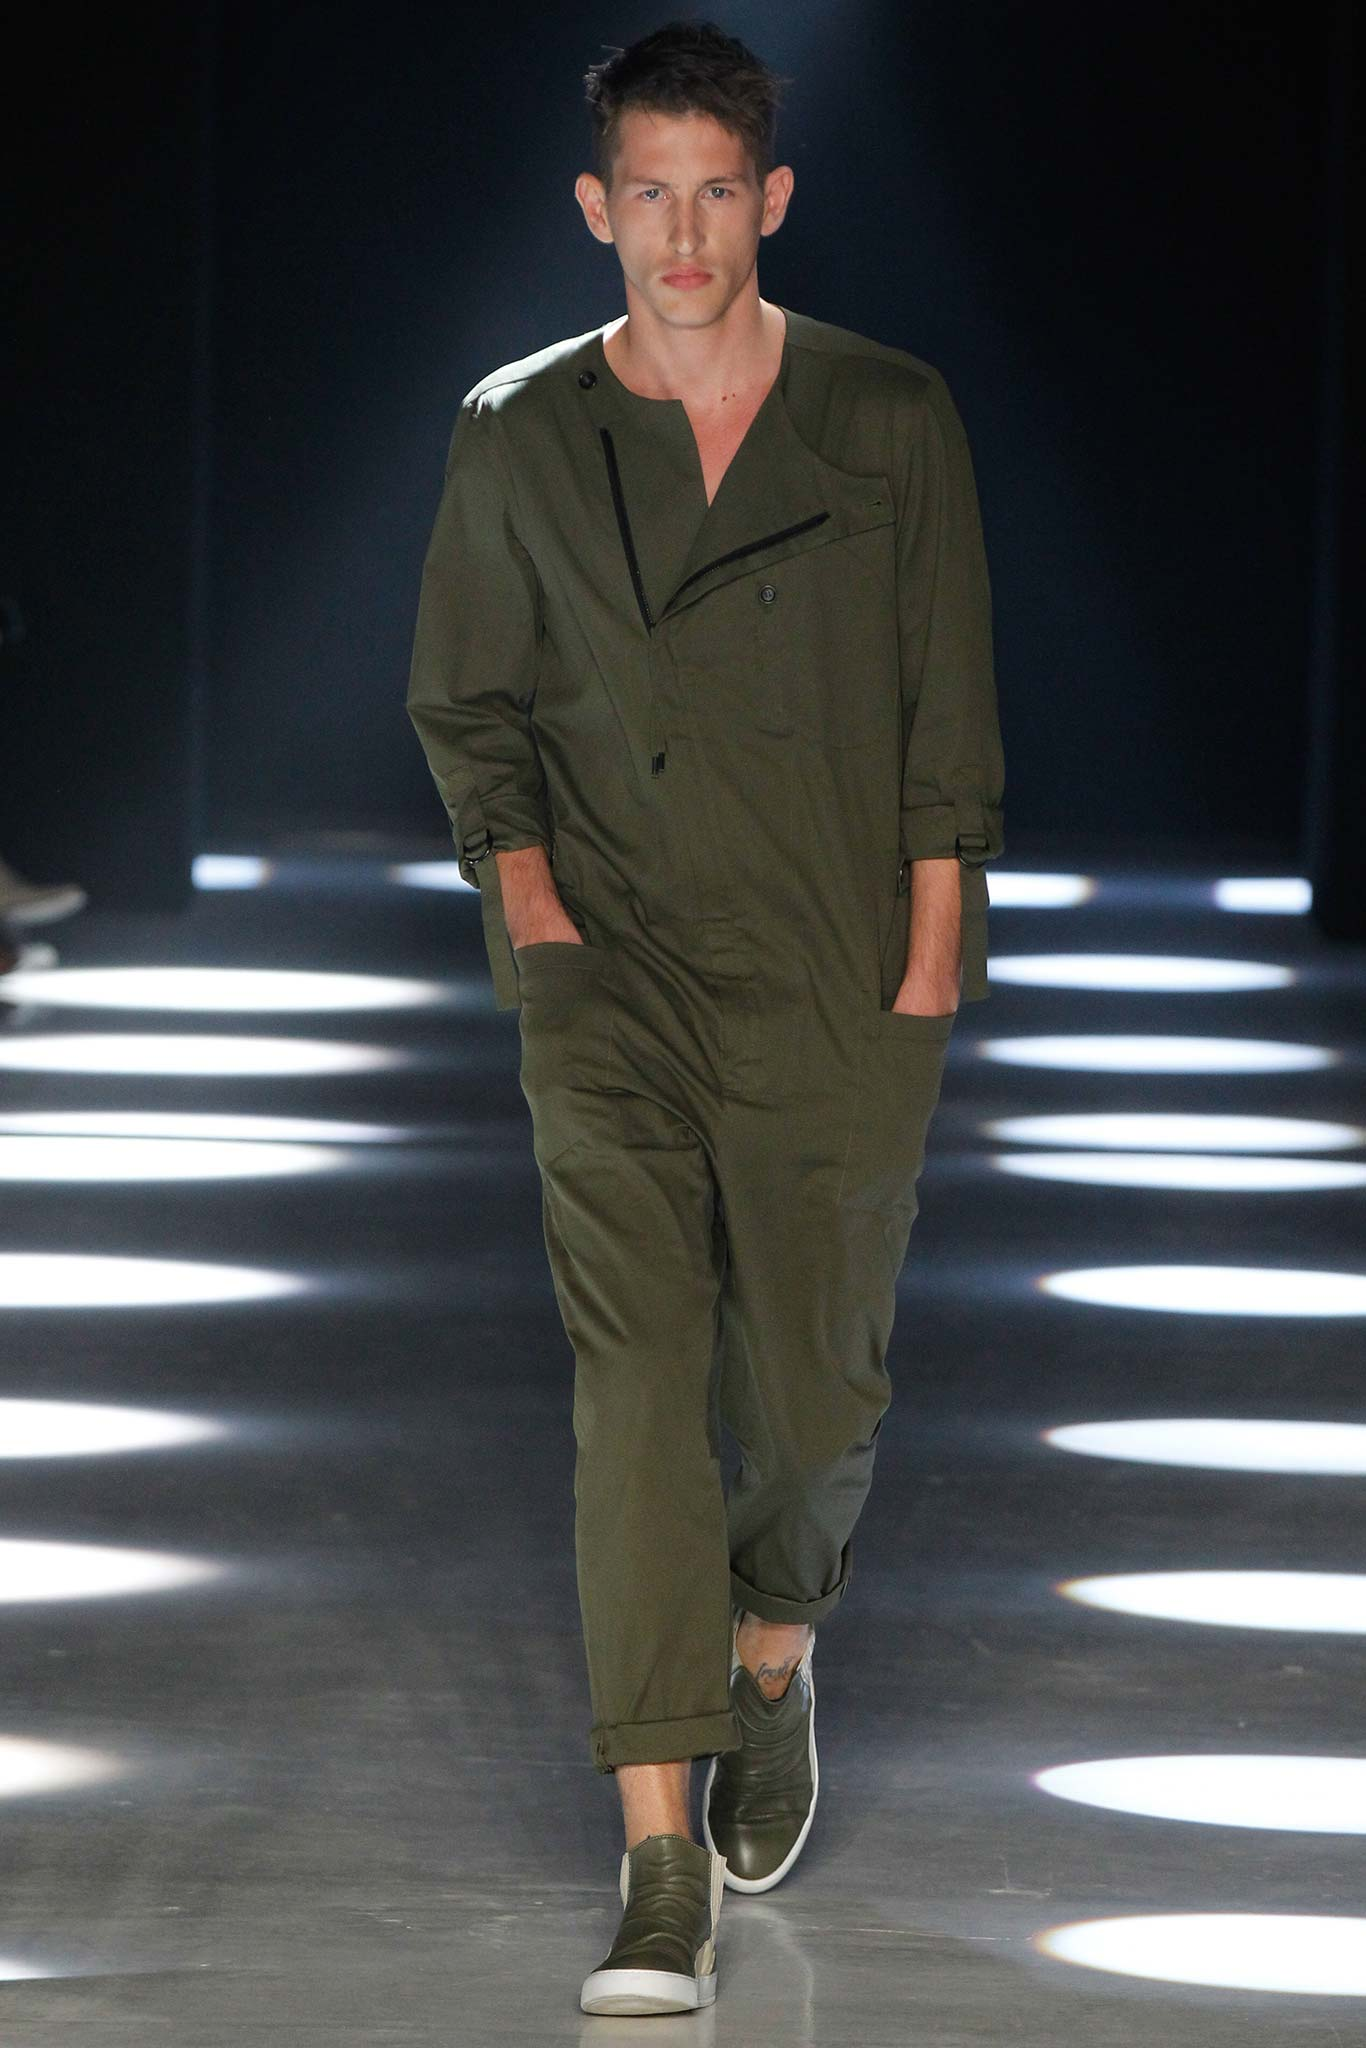 alexandre plokhov, nyfwm, new york fashion week, new york fashion week mens